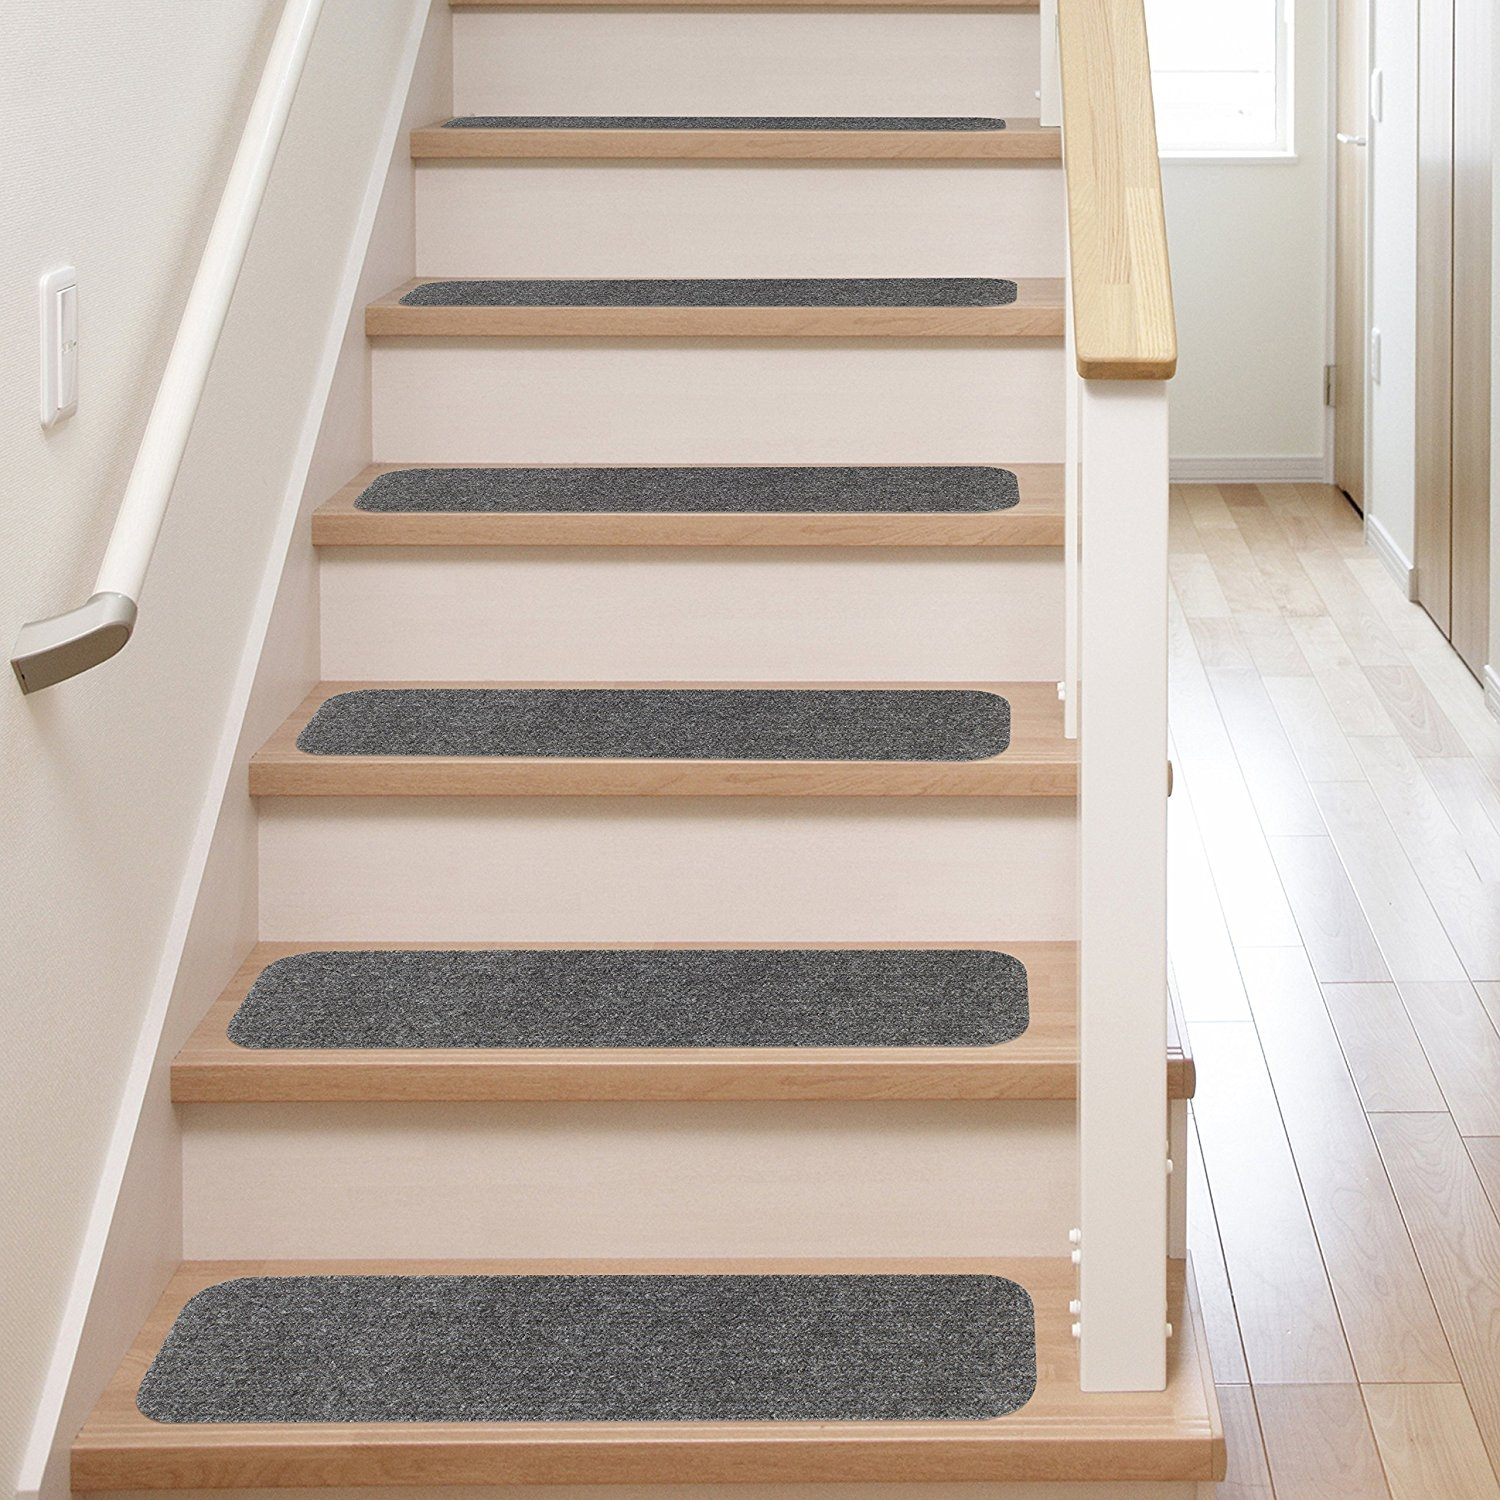 13 Stair Treads Non Slip Carpet Pads Easy Tape Installation Within Skid Resistant Stair Treads (View 5 of 15)